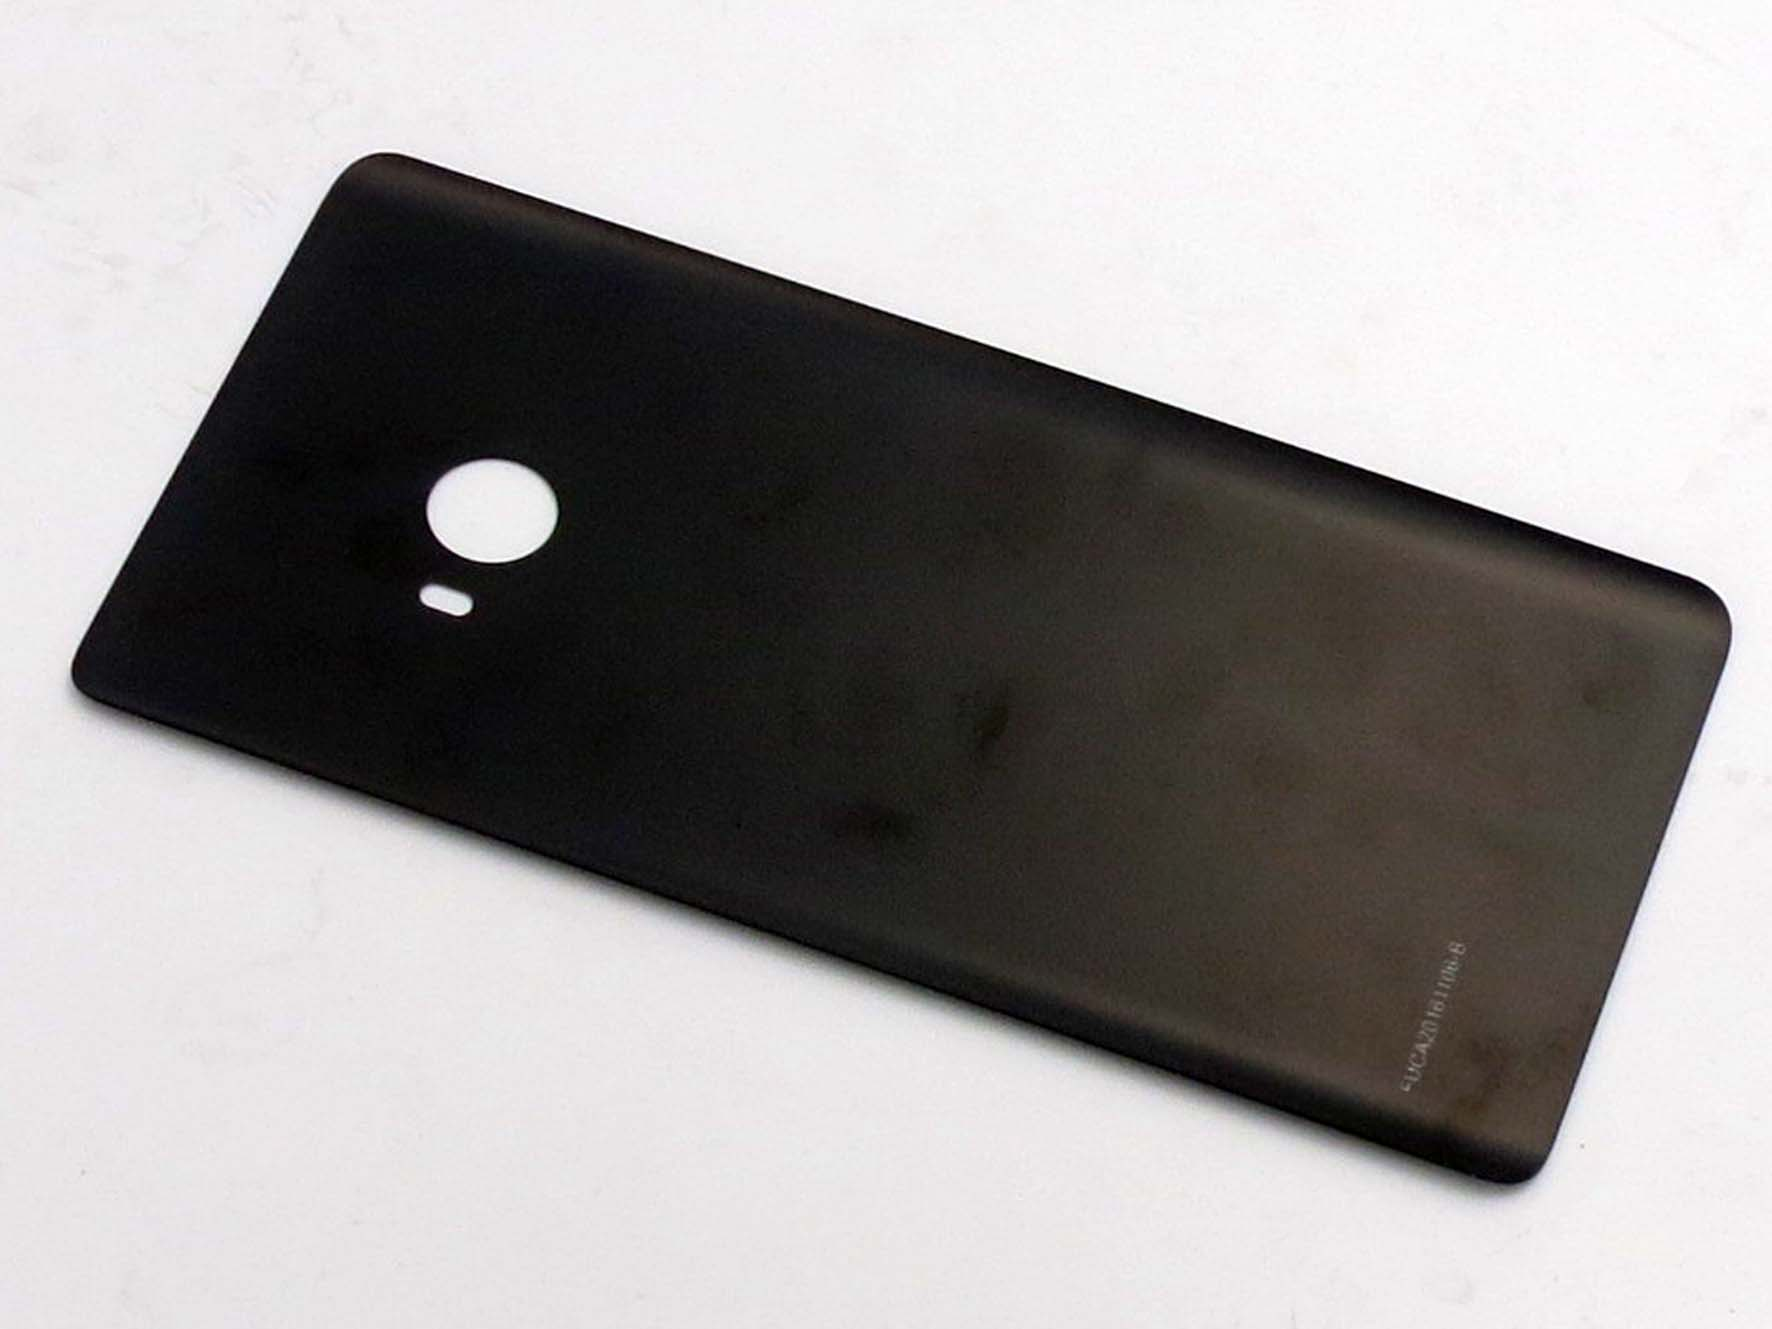 Original Battery Cover Back Housing Cover for xiaomi note 2-Black